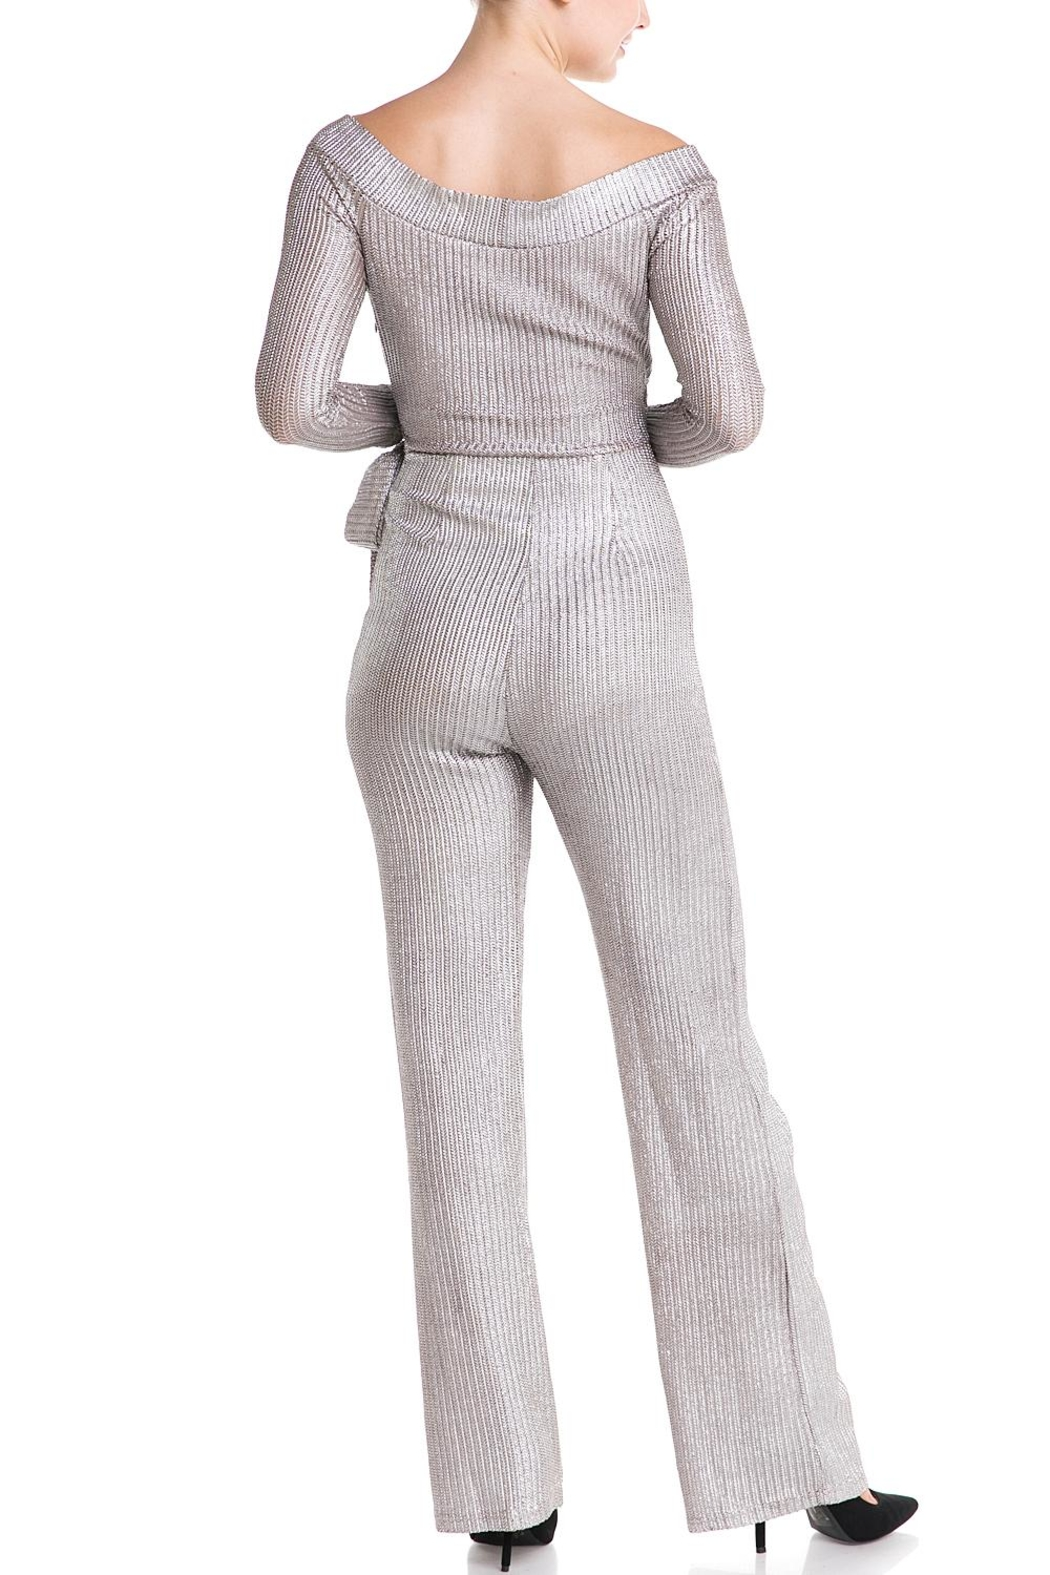 luxxel Tie Sweater Jumpsuit - Side Cropped Image